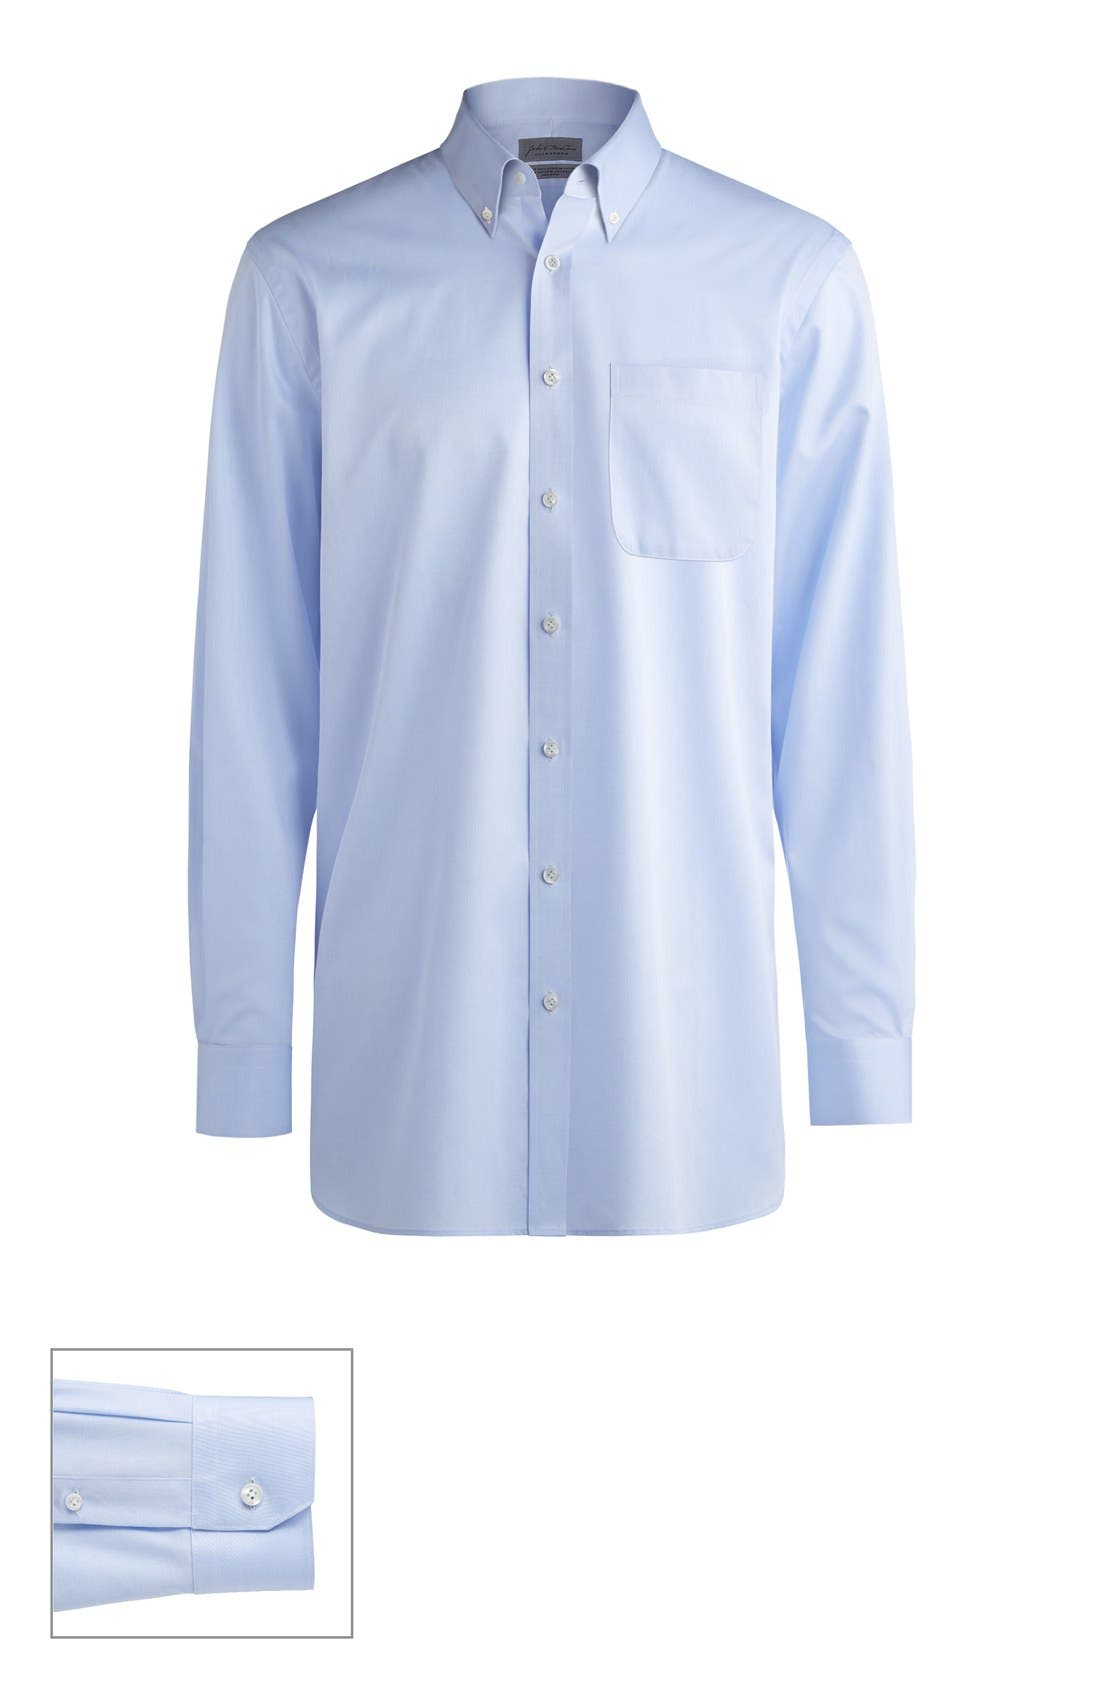 John W. Nordstrom® Made to Measure Trim Fit Button Down Collar Solid Dress Shirt